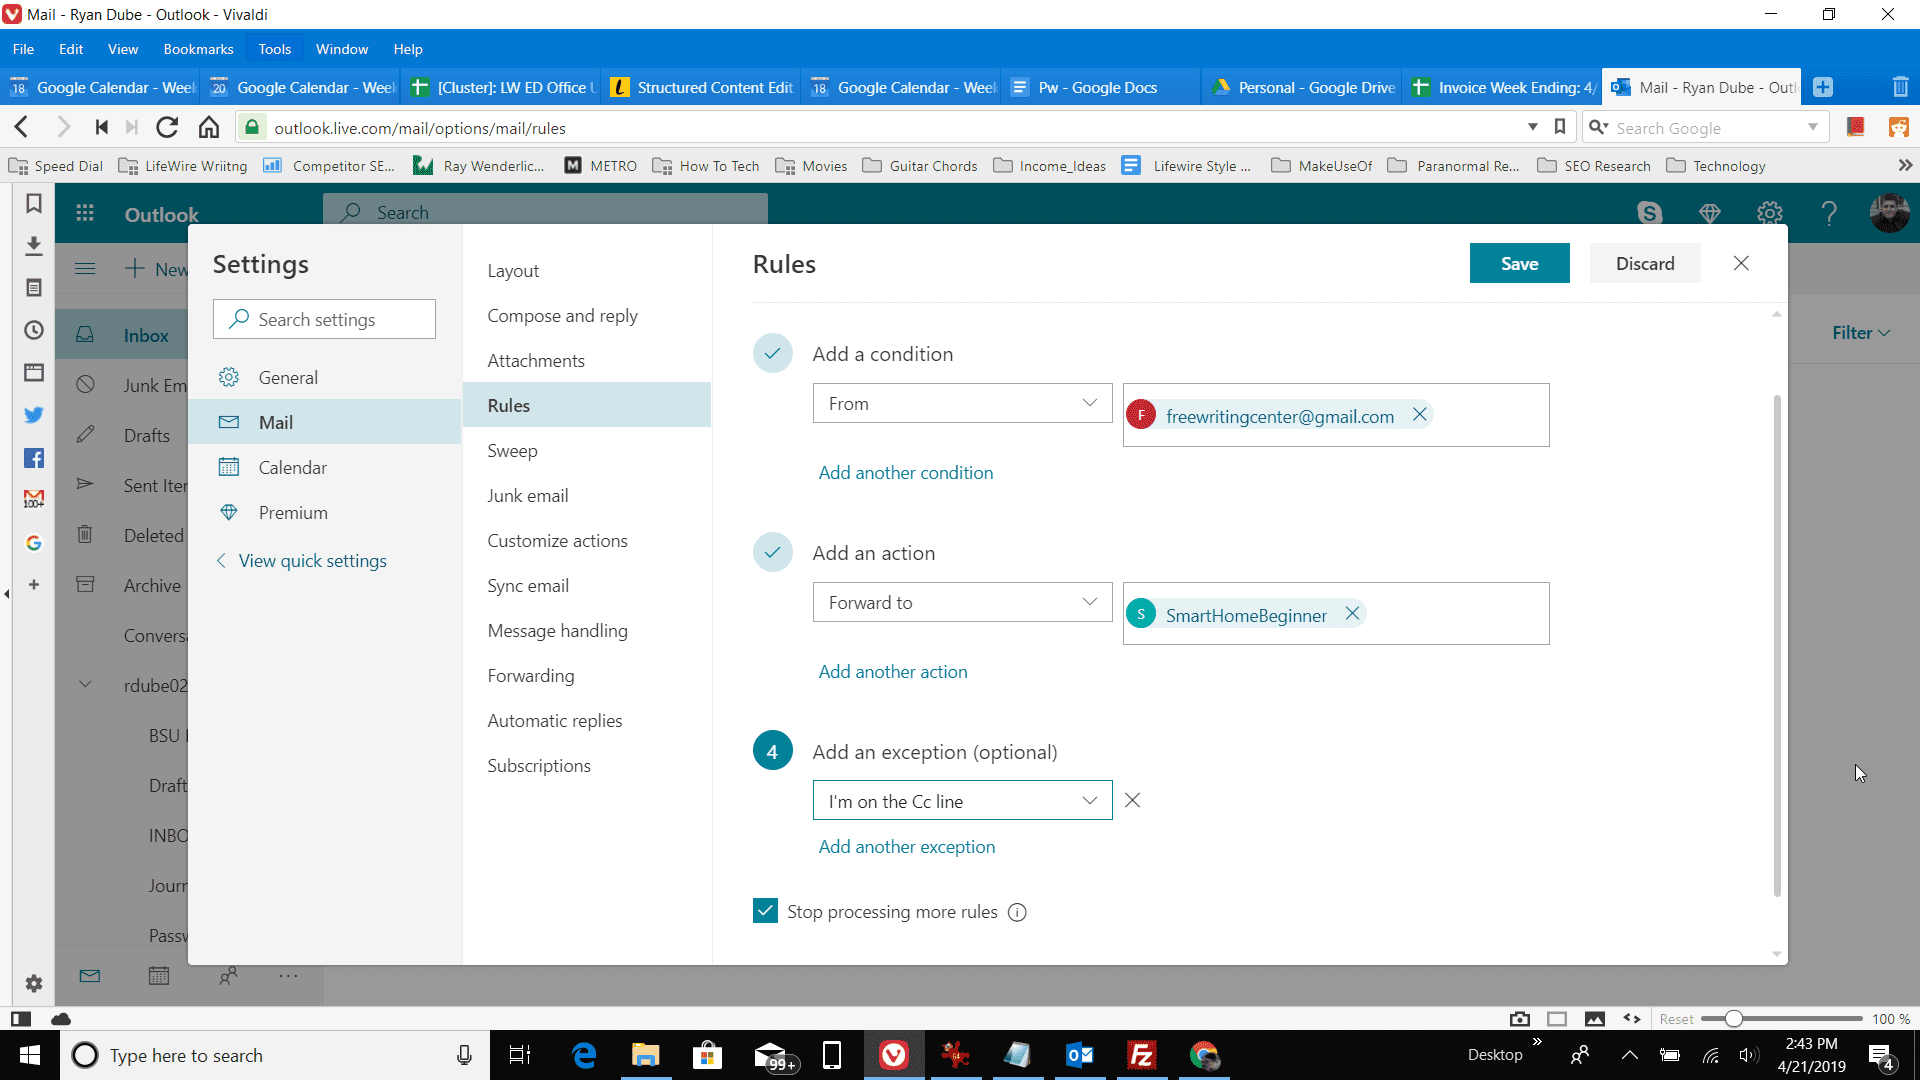 Screenshot of adding rule exception in Outlook online